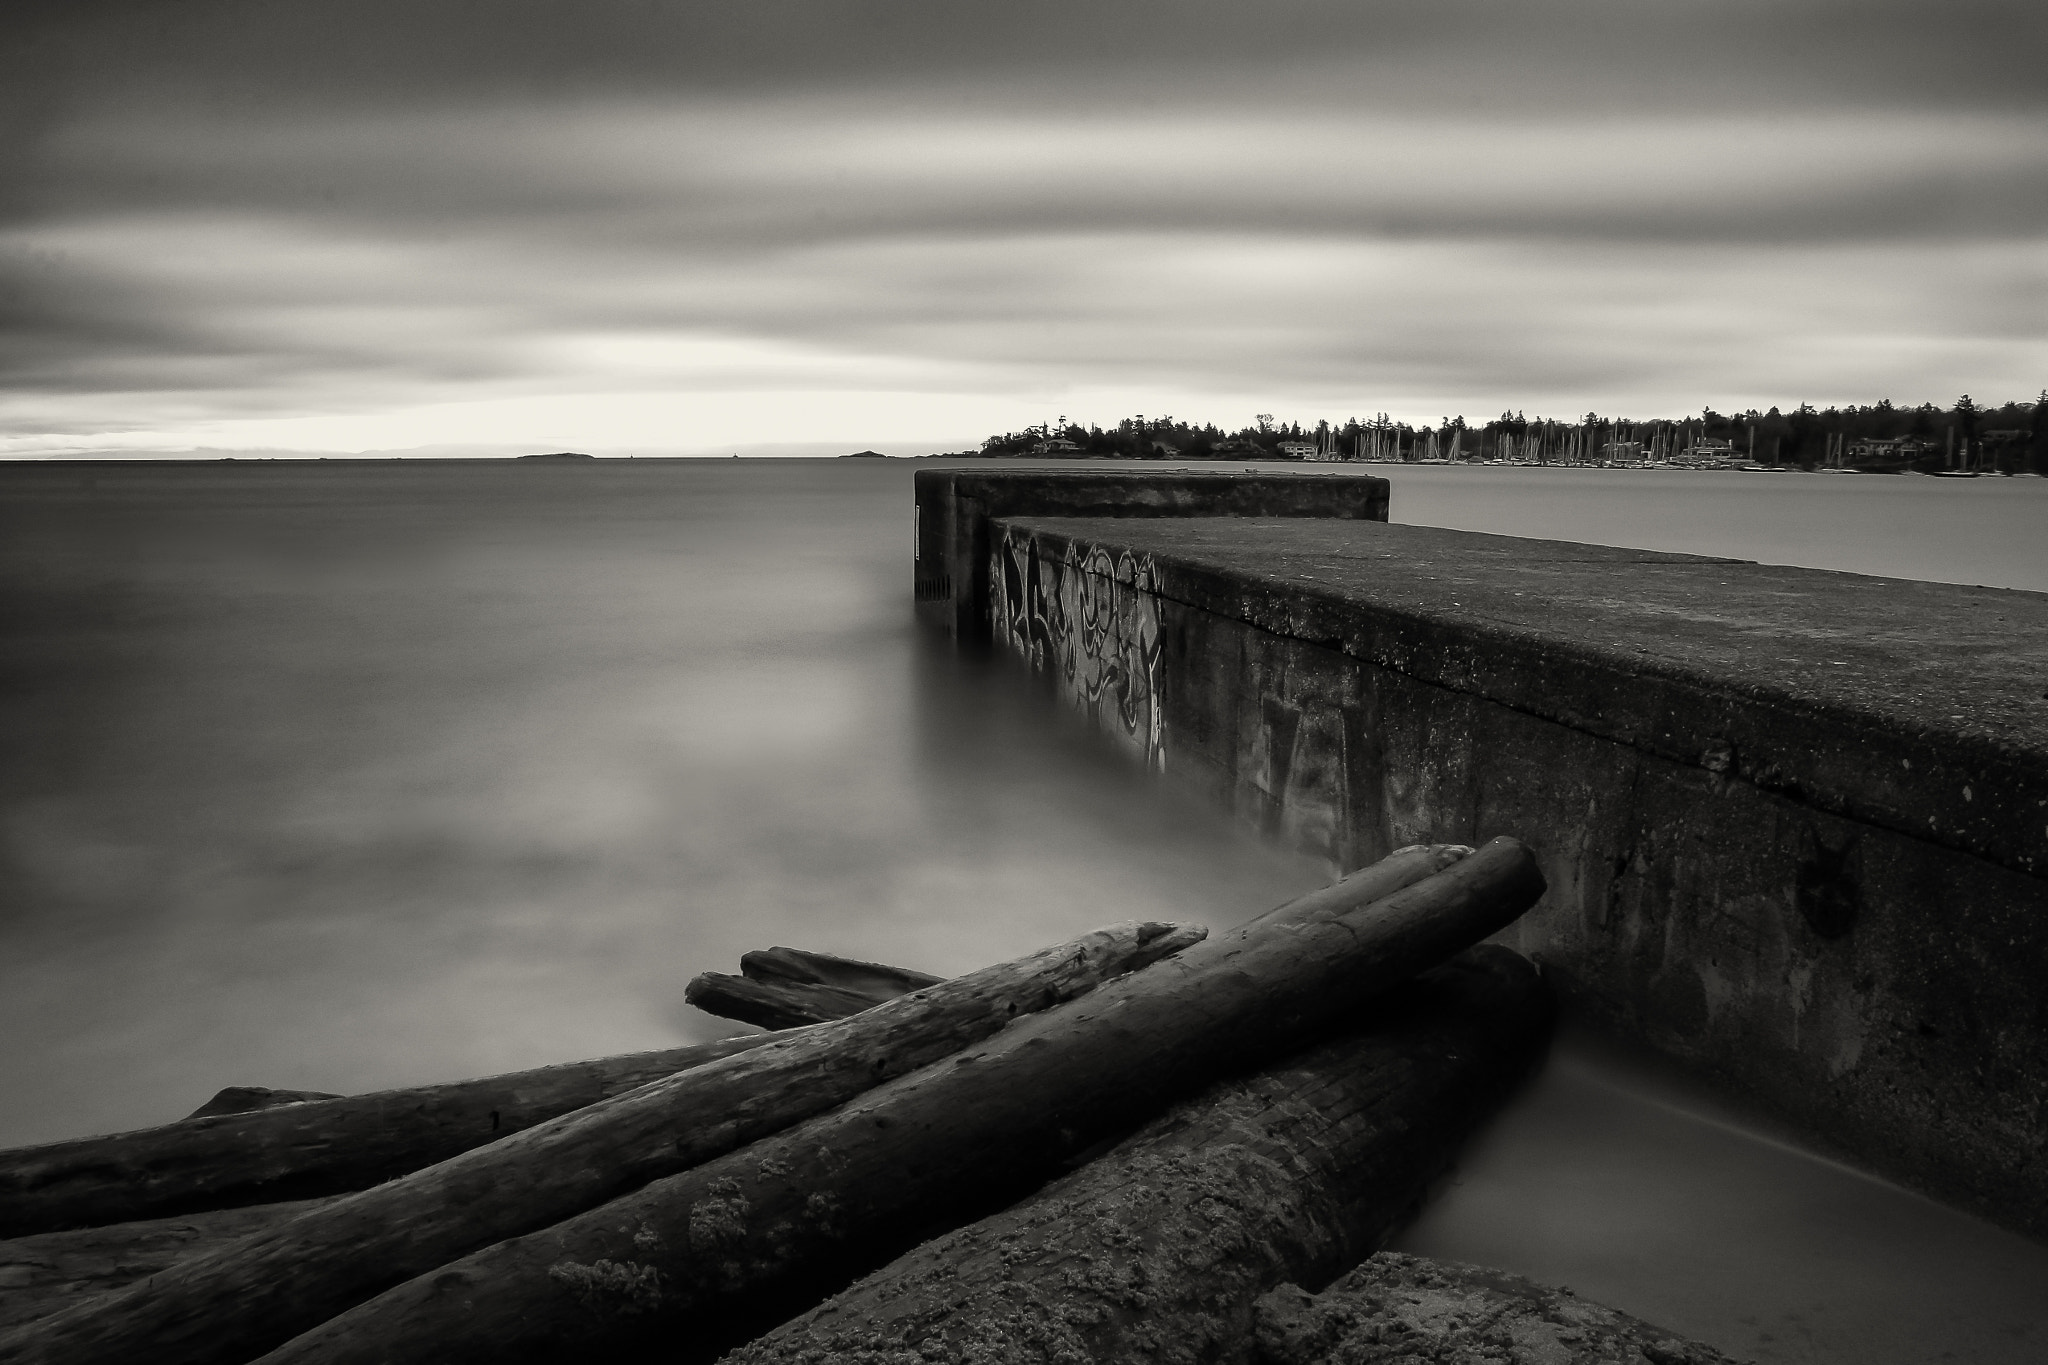 Photograph Cadboro Bay, Victoria, Canada by Carrie Cole on 500px